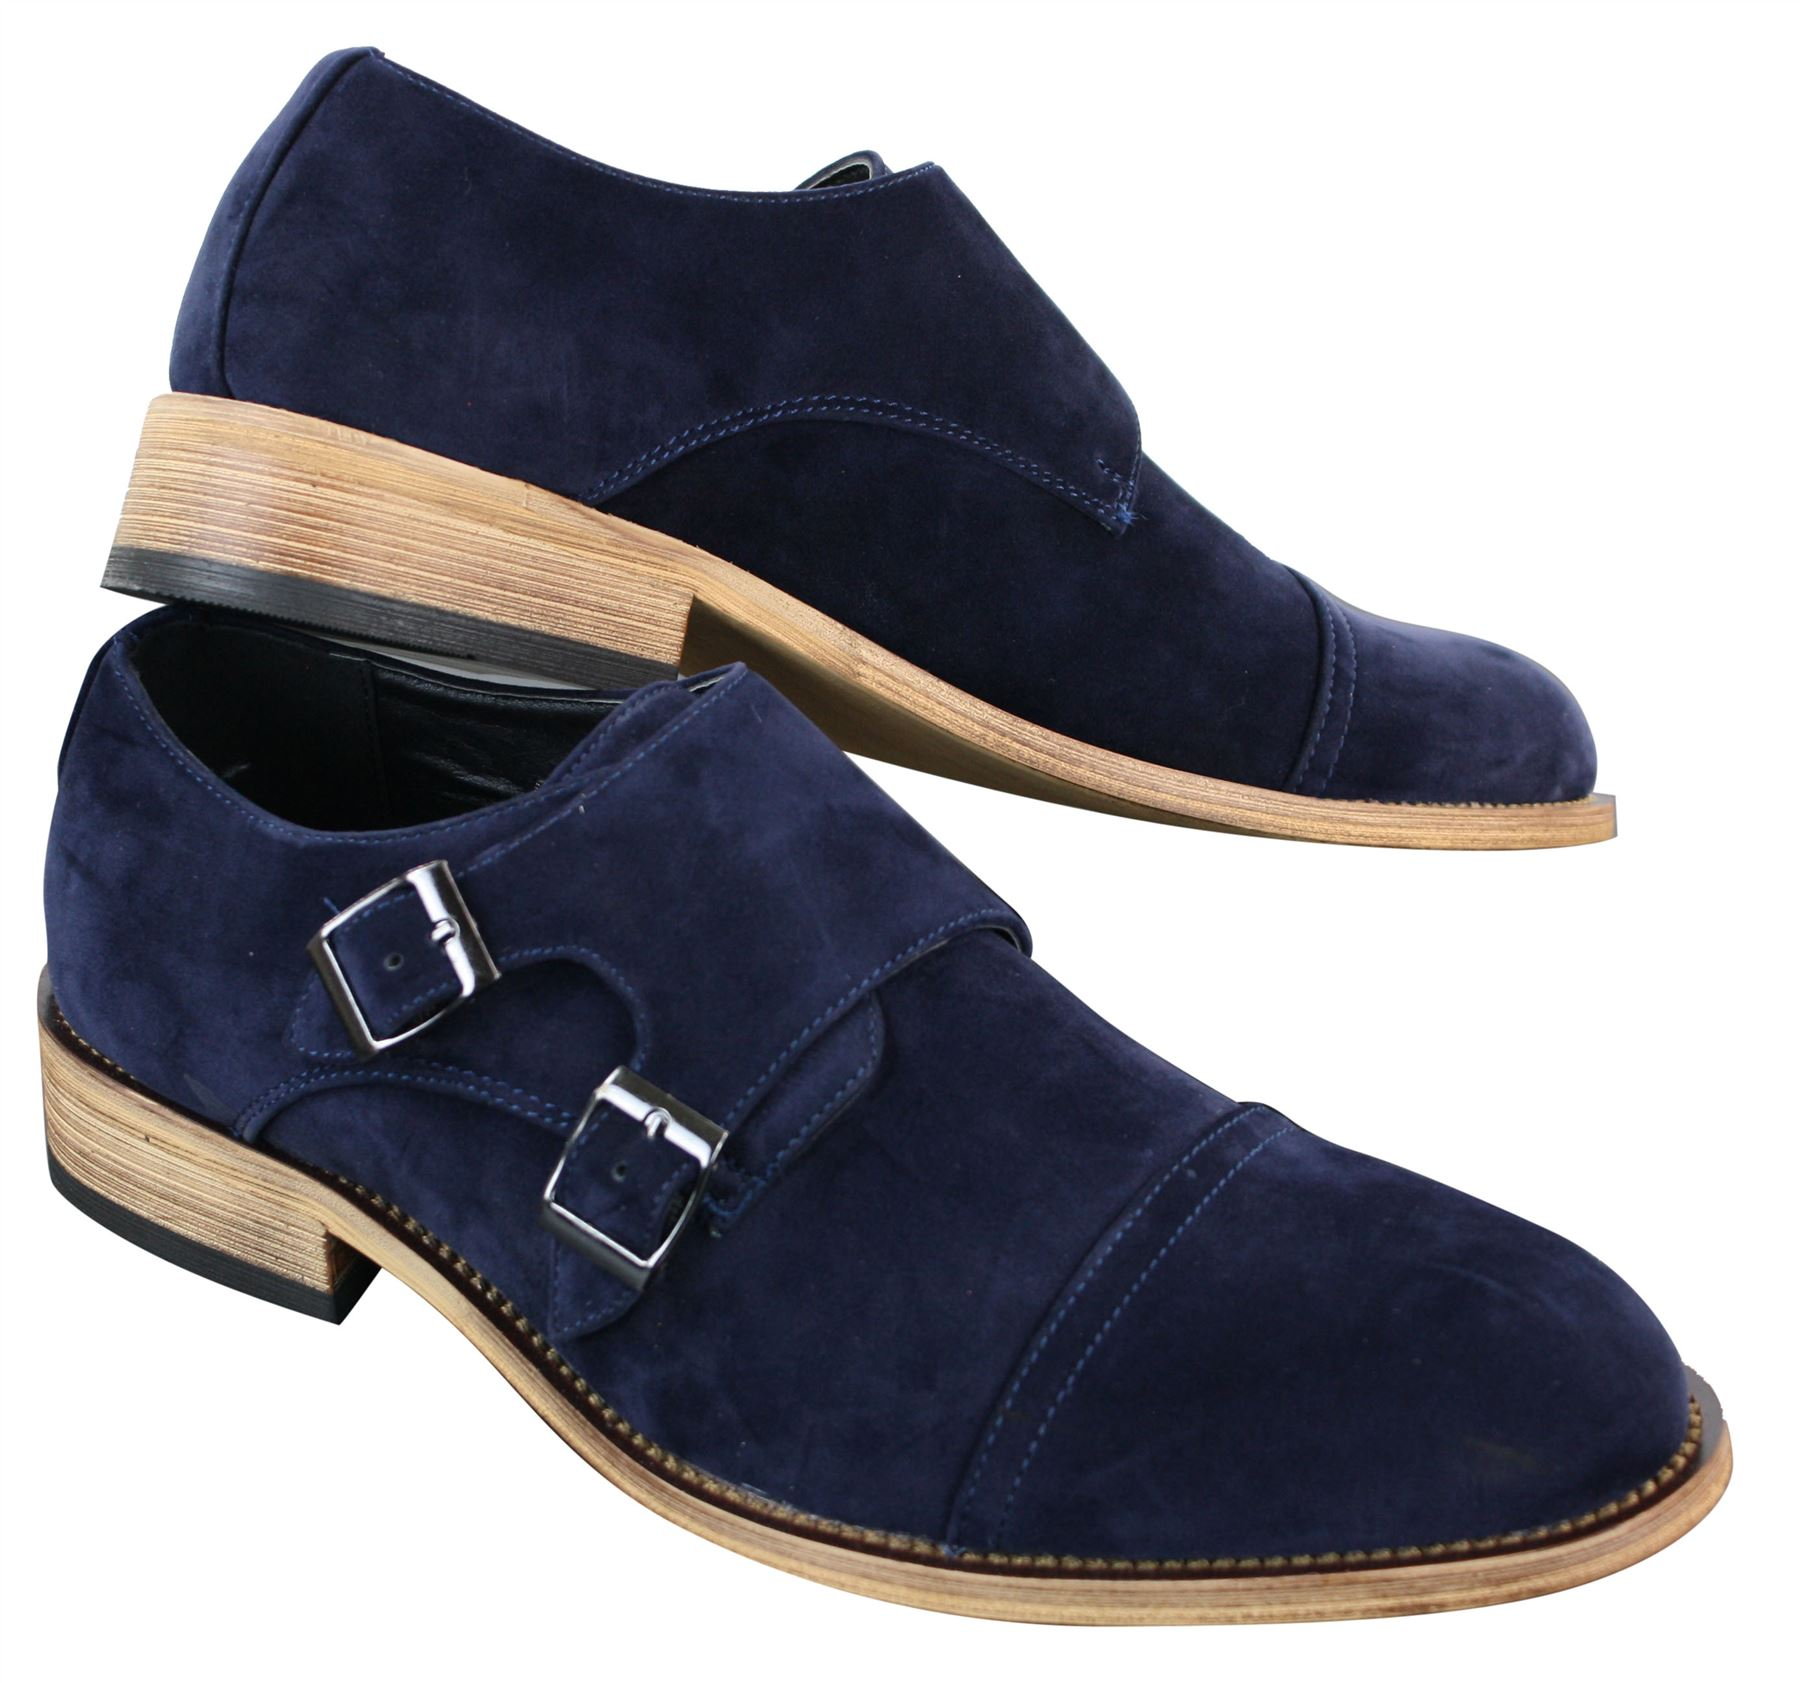 Watch Strap Blue Suede Shoes